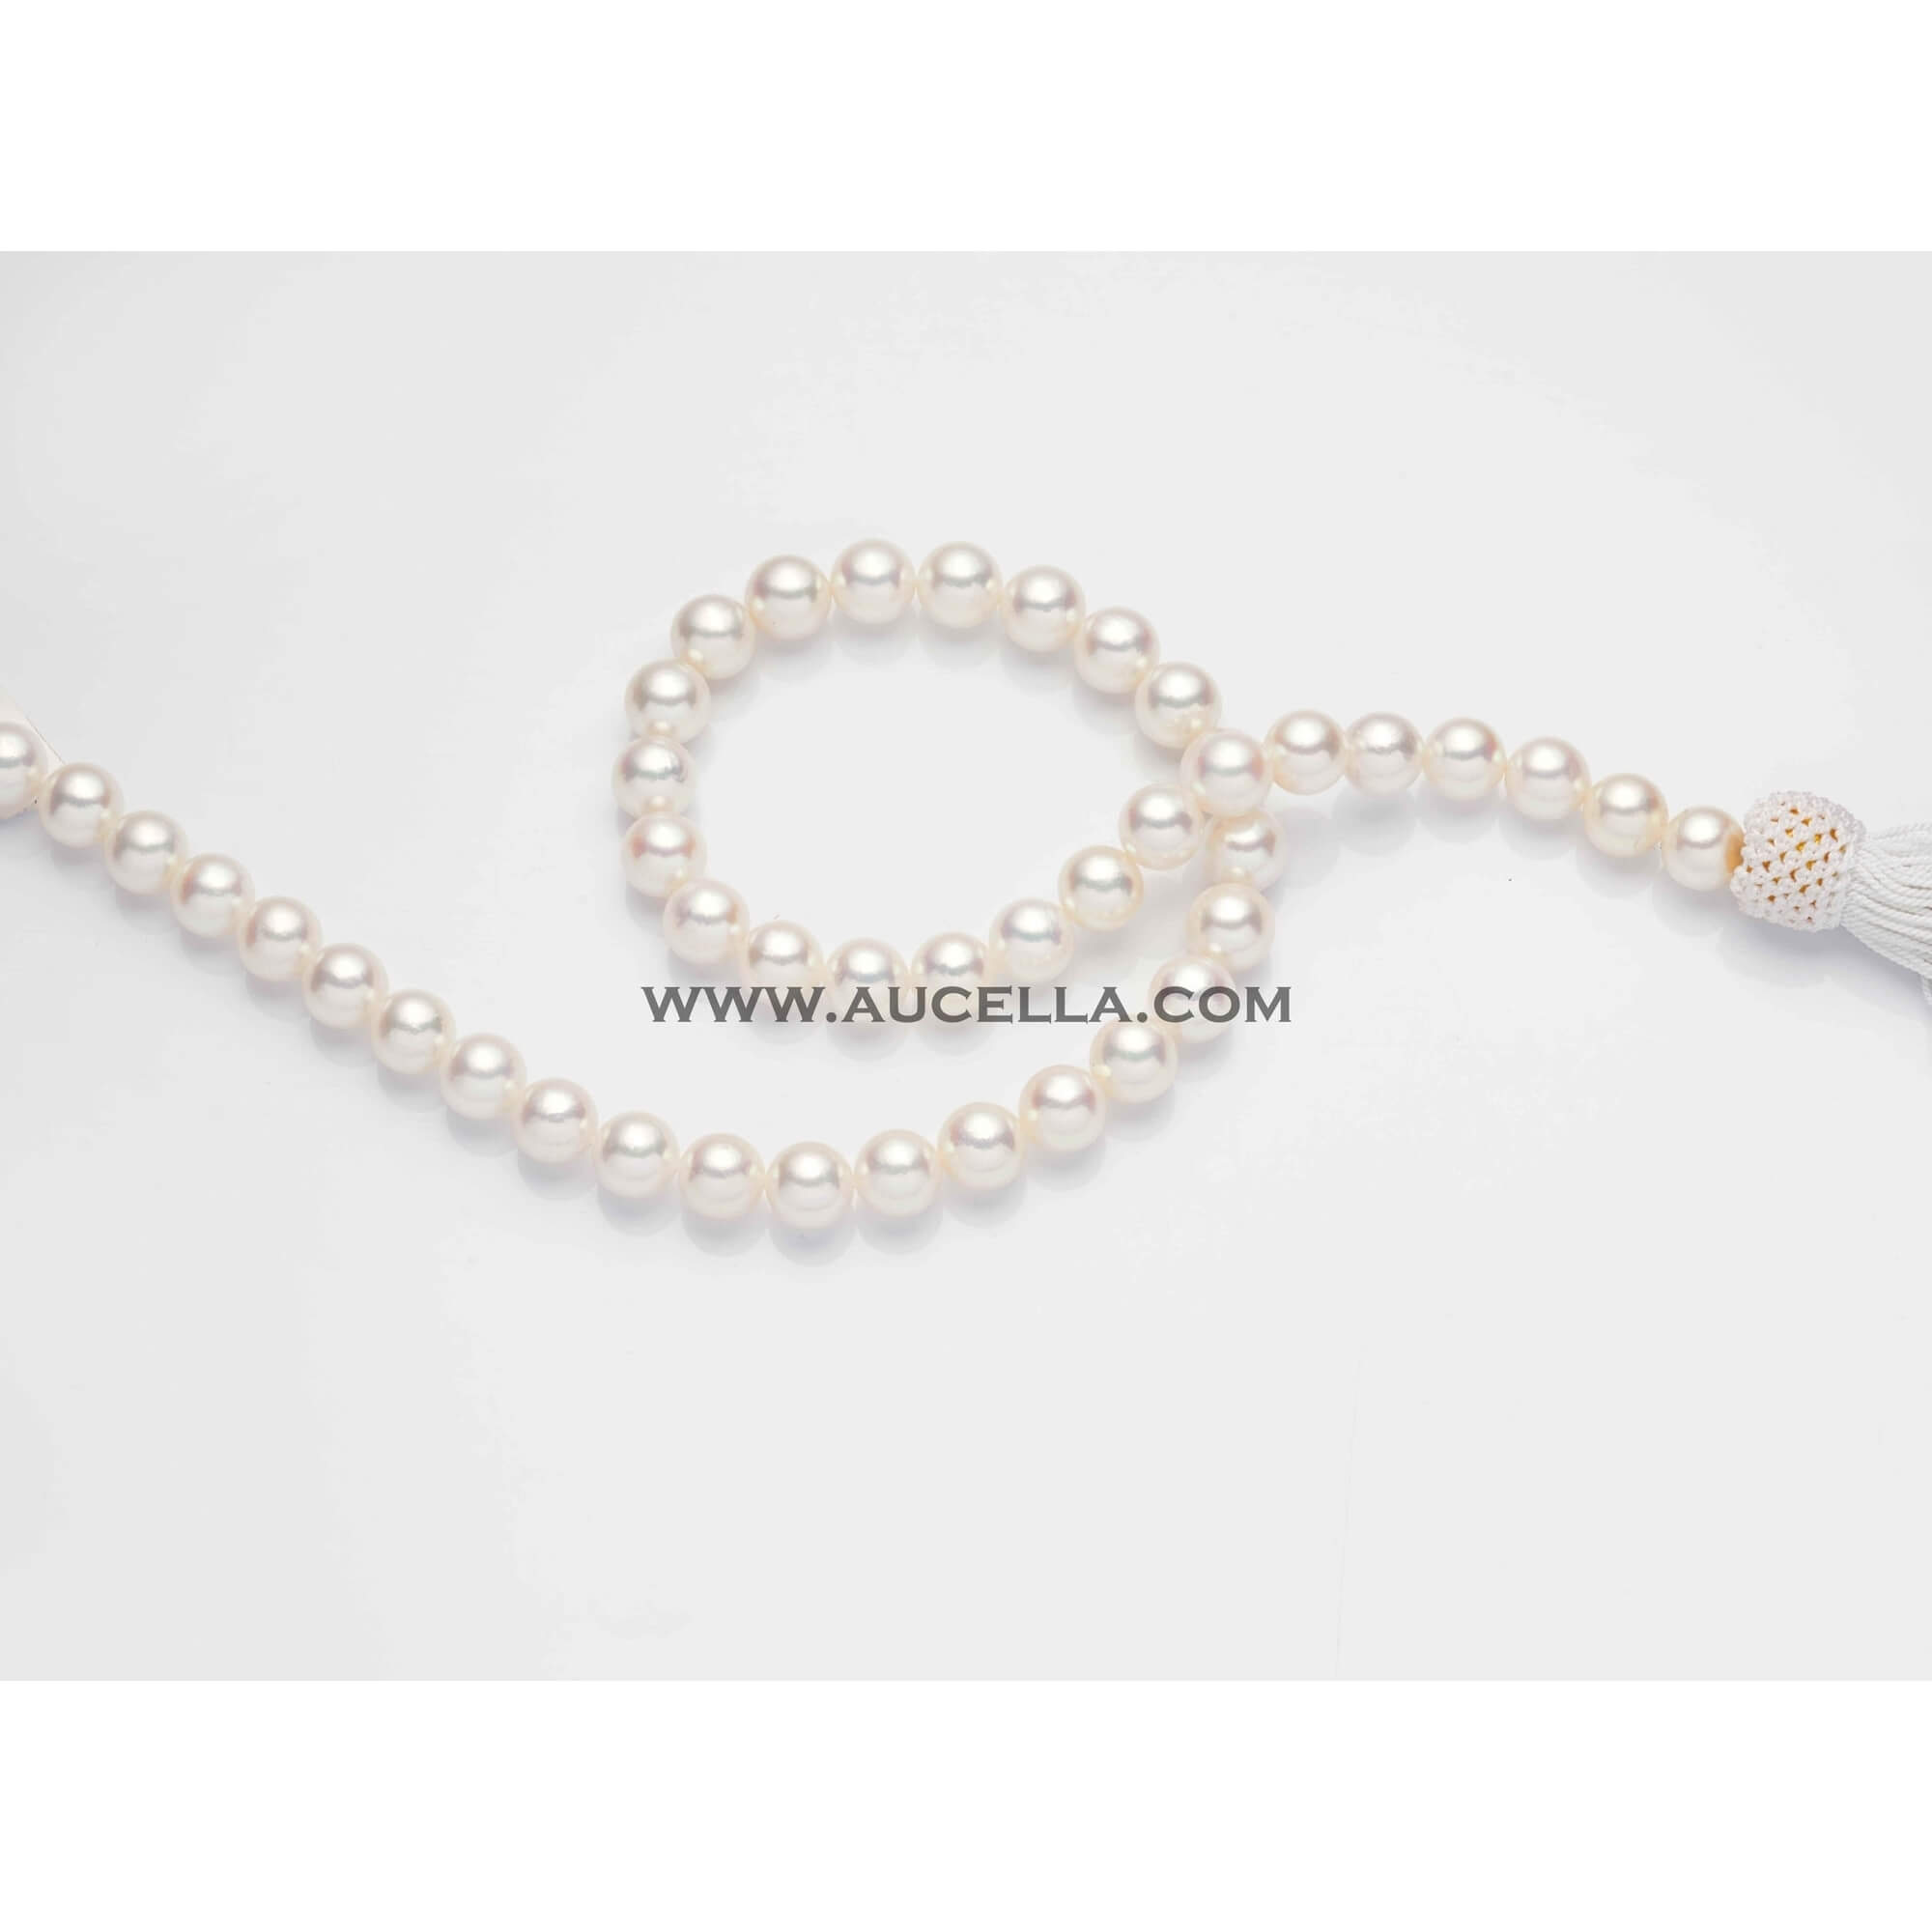 Japan akoya pearls strands beads 10 mm